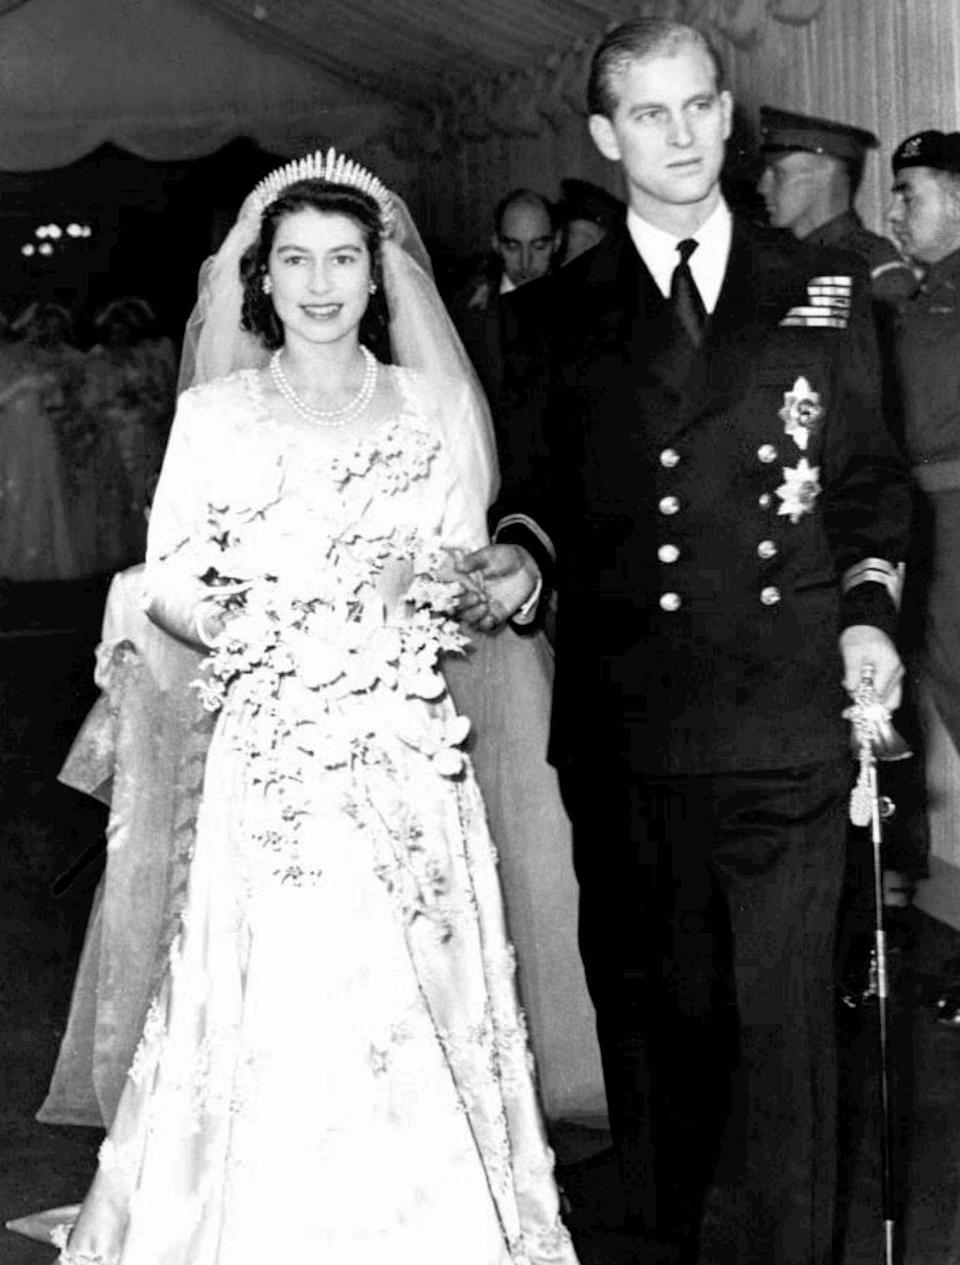 The Greek prince became Prince Philip Duke of Edinburgh, on his wedding day, created so by Elizabeth's father, King George VI.